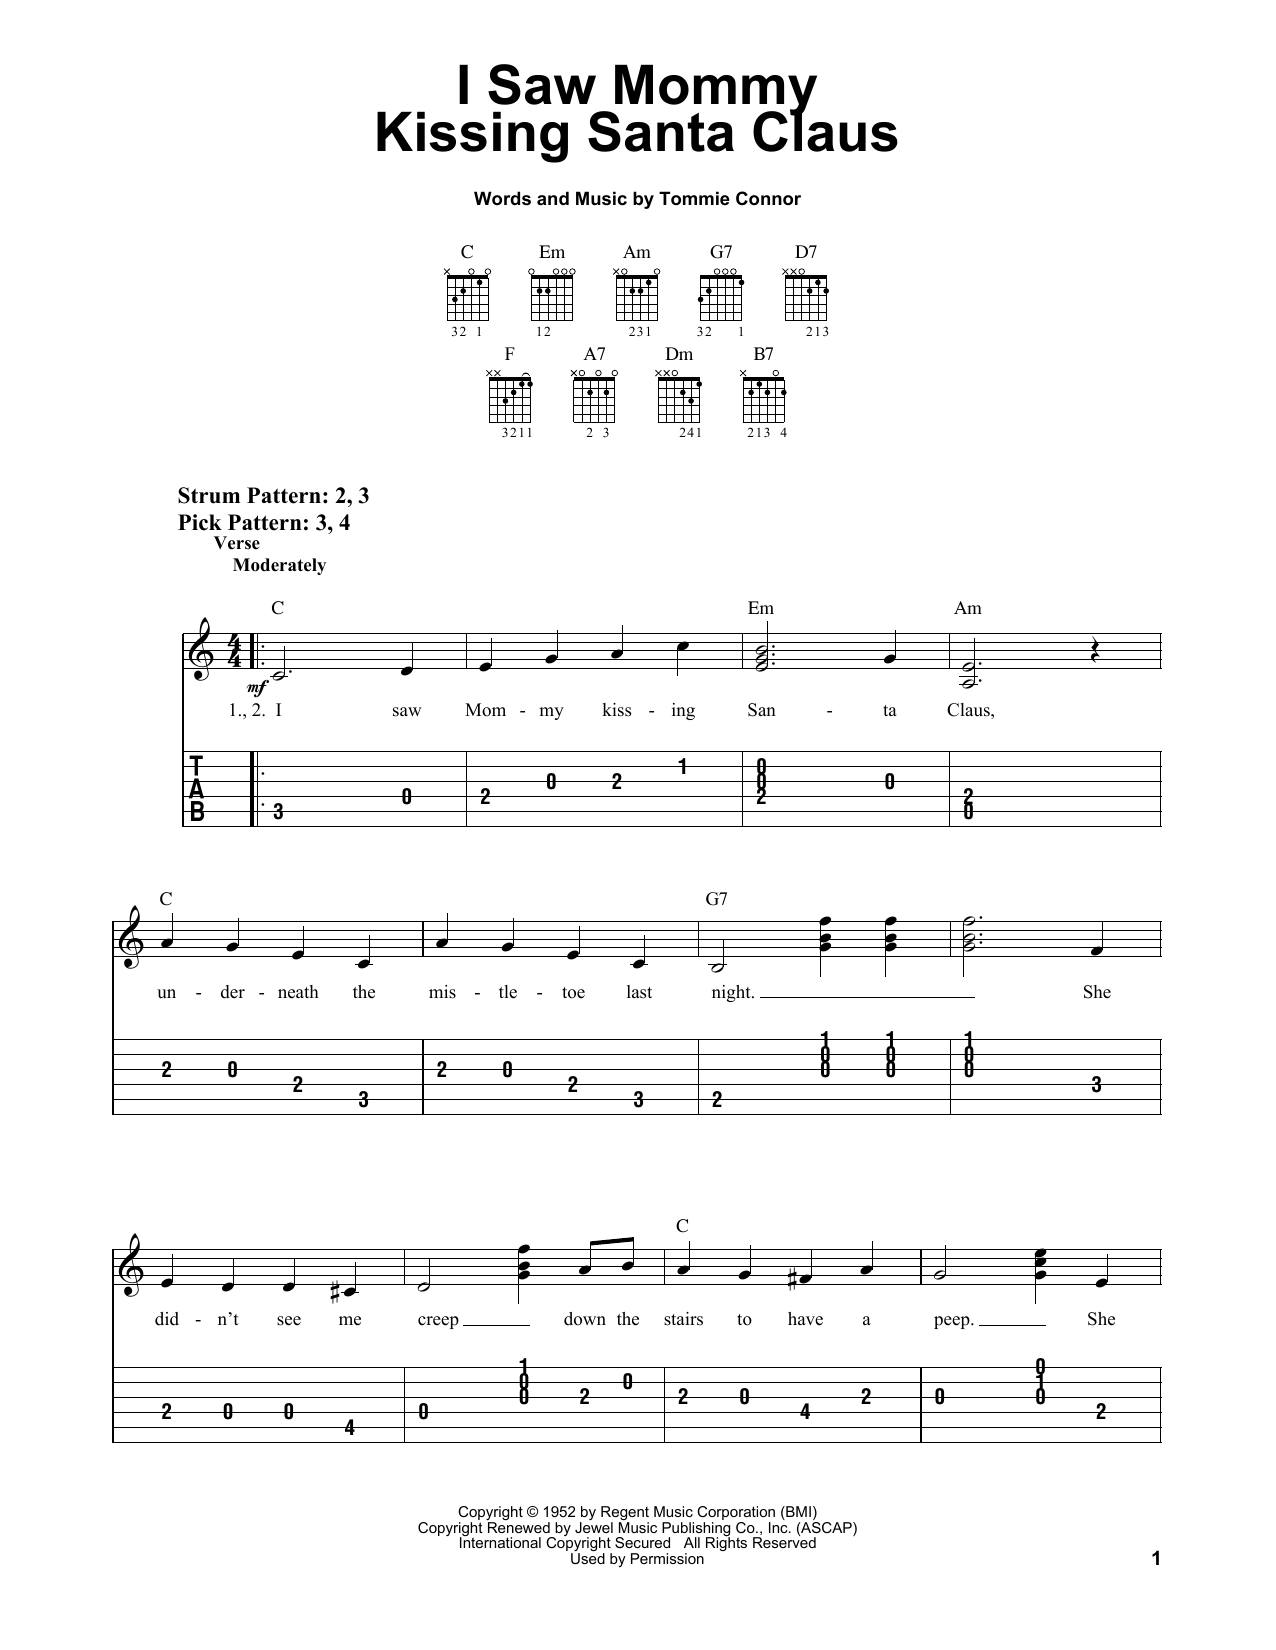 Download Tommie Connor 'I Saw Mommy Kissing Santa Claus' Digital Sheet Music Notes & Chords and start playing in minutes